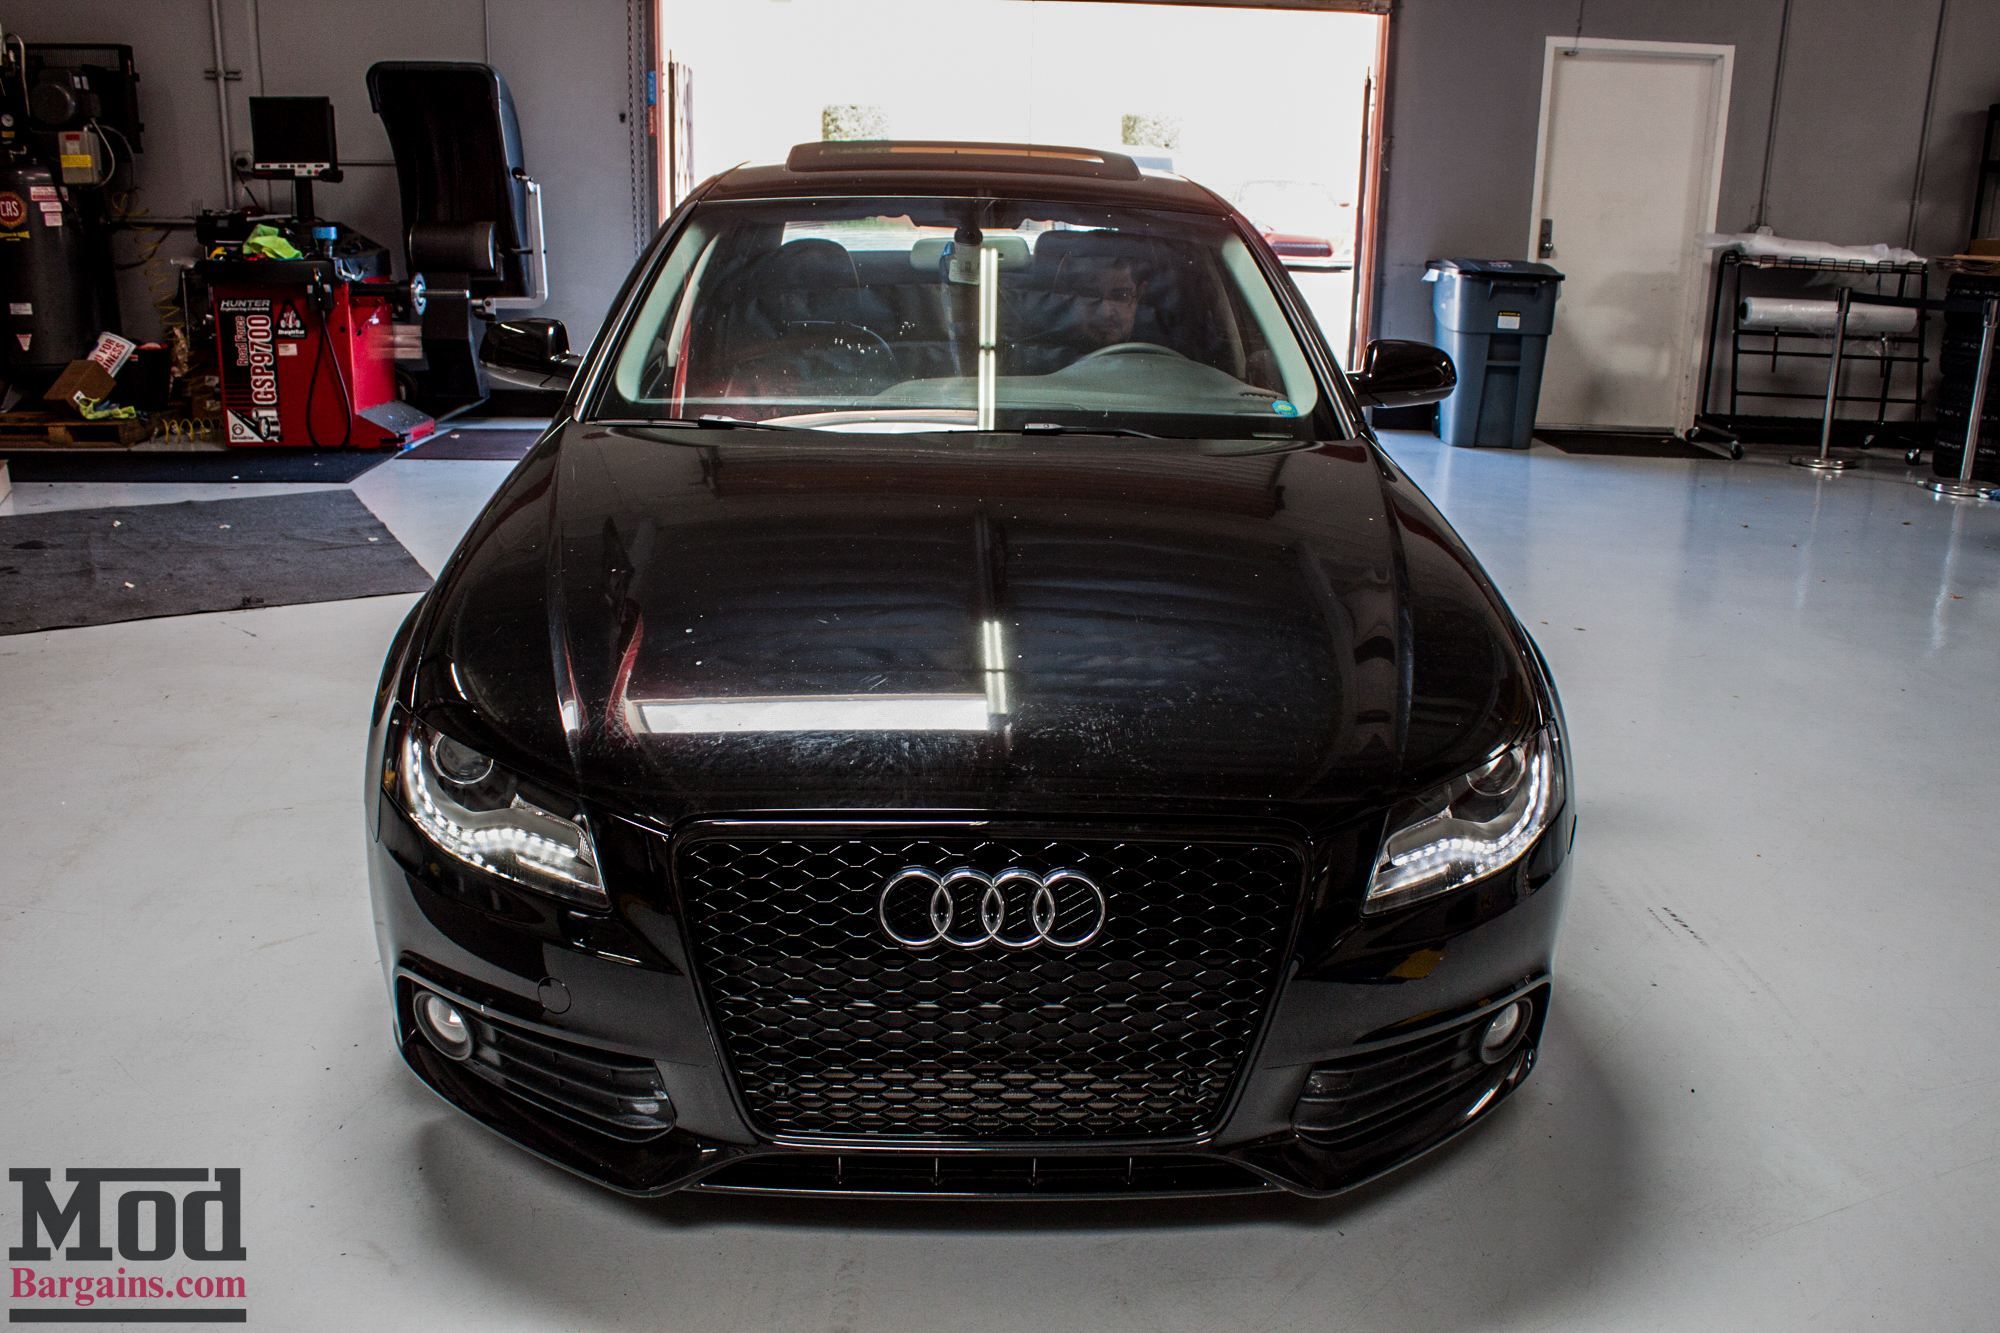 quick snap blacked out b8 audi a4 on solo werks coilovers. Black Bedroom Furniture Sets. Home Design Ideas